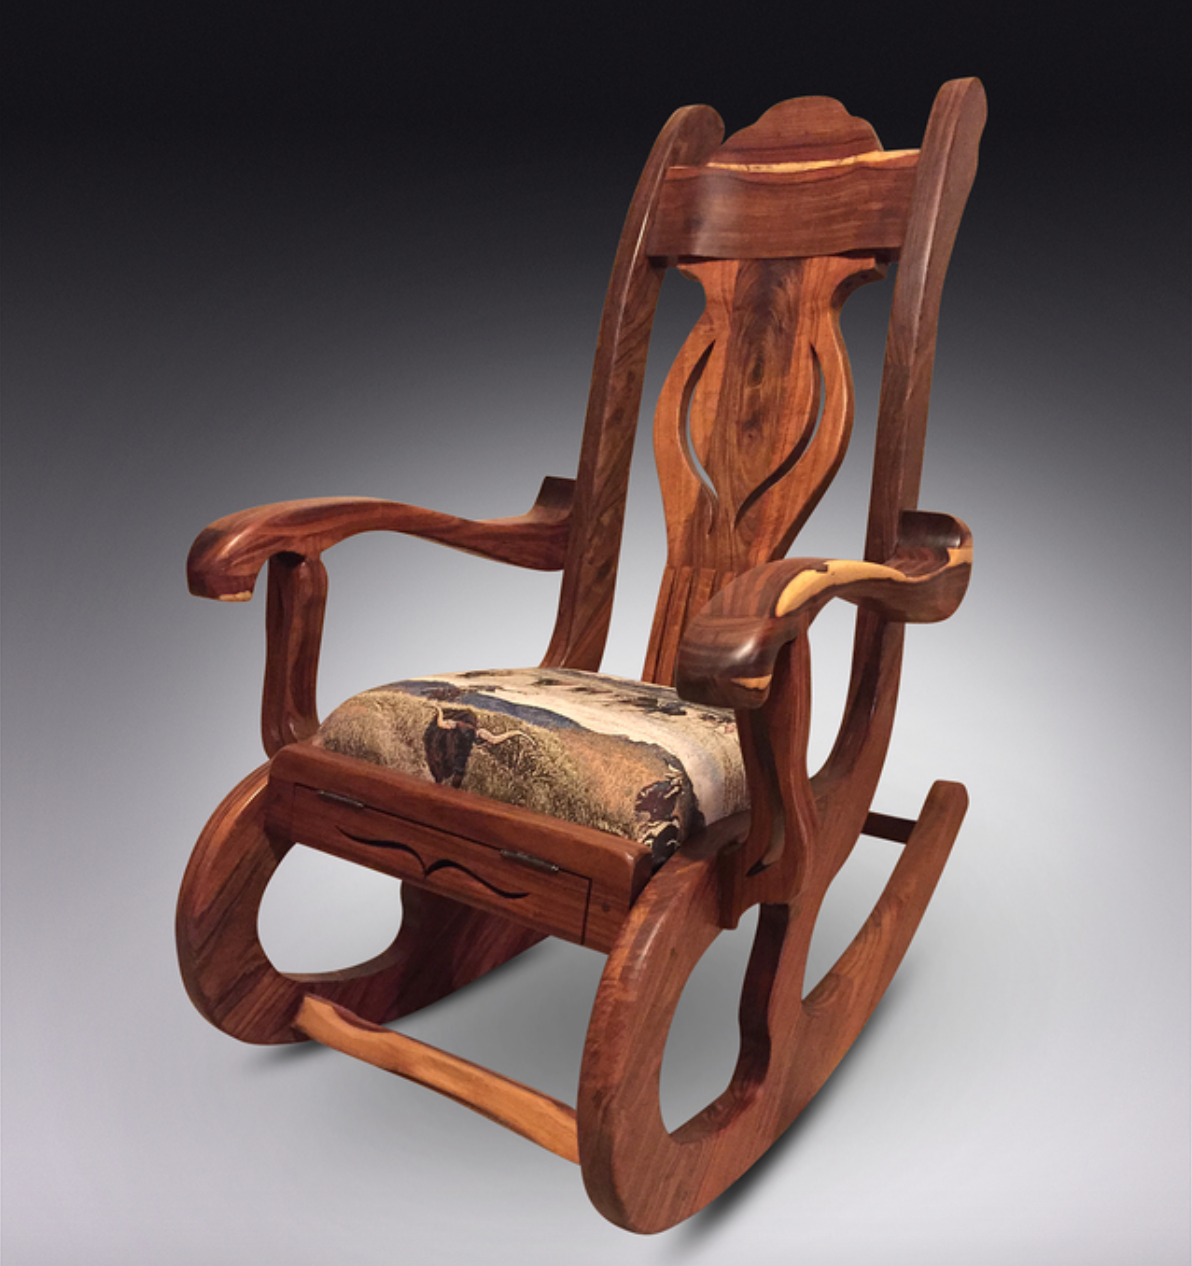 Clyde Thompson - Exotic Hardwood used to create these